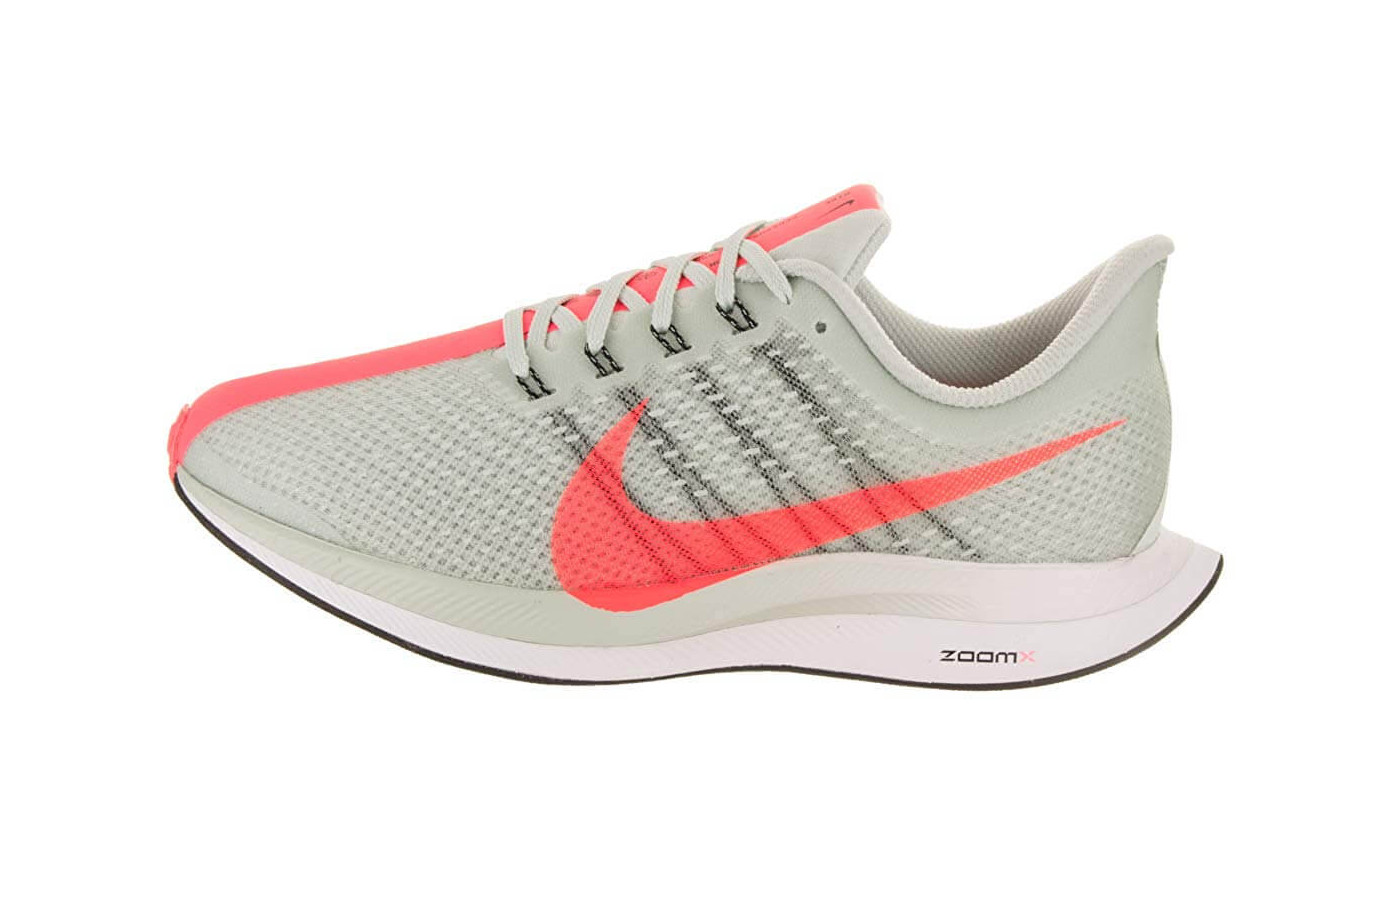 The Zoom Pegasus Turbo's ZoomX midsole is lightweight, comfortable, and responsive.